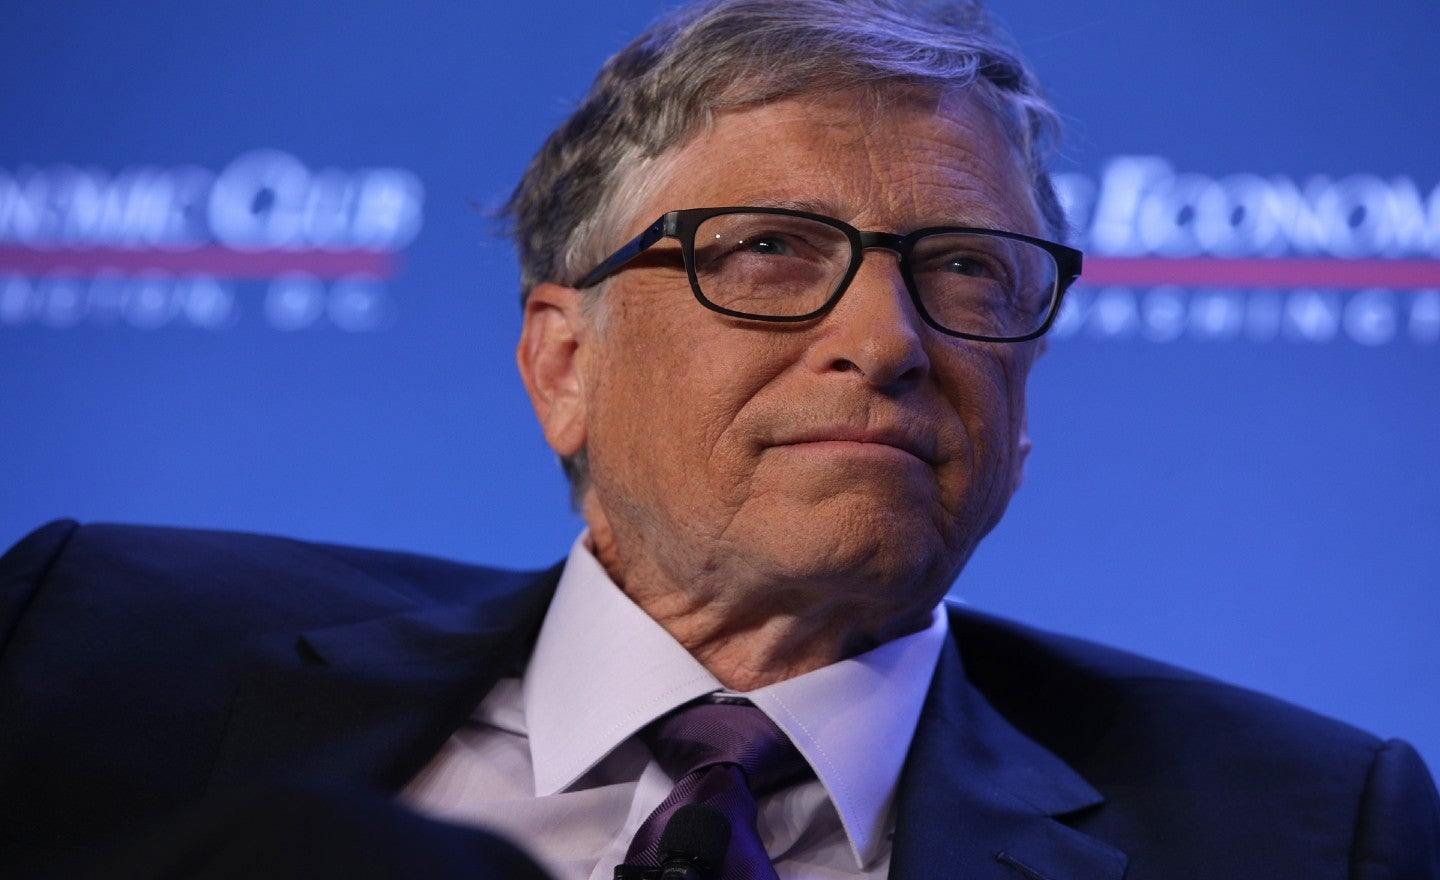 Halting Funds To WHO Is As Dangerous As It Sounds – Gates